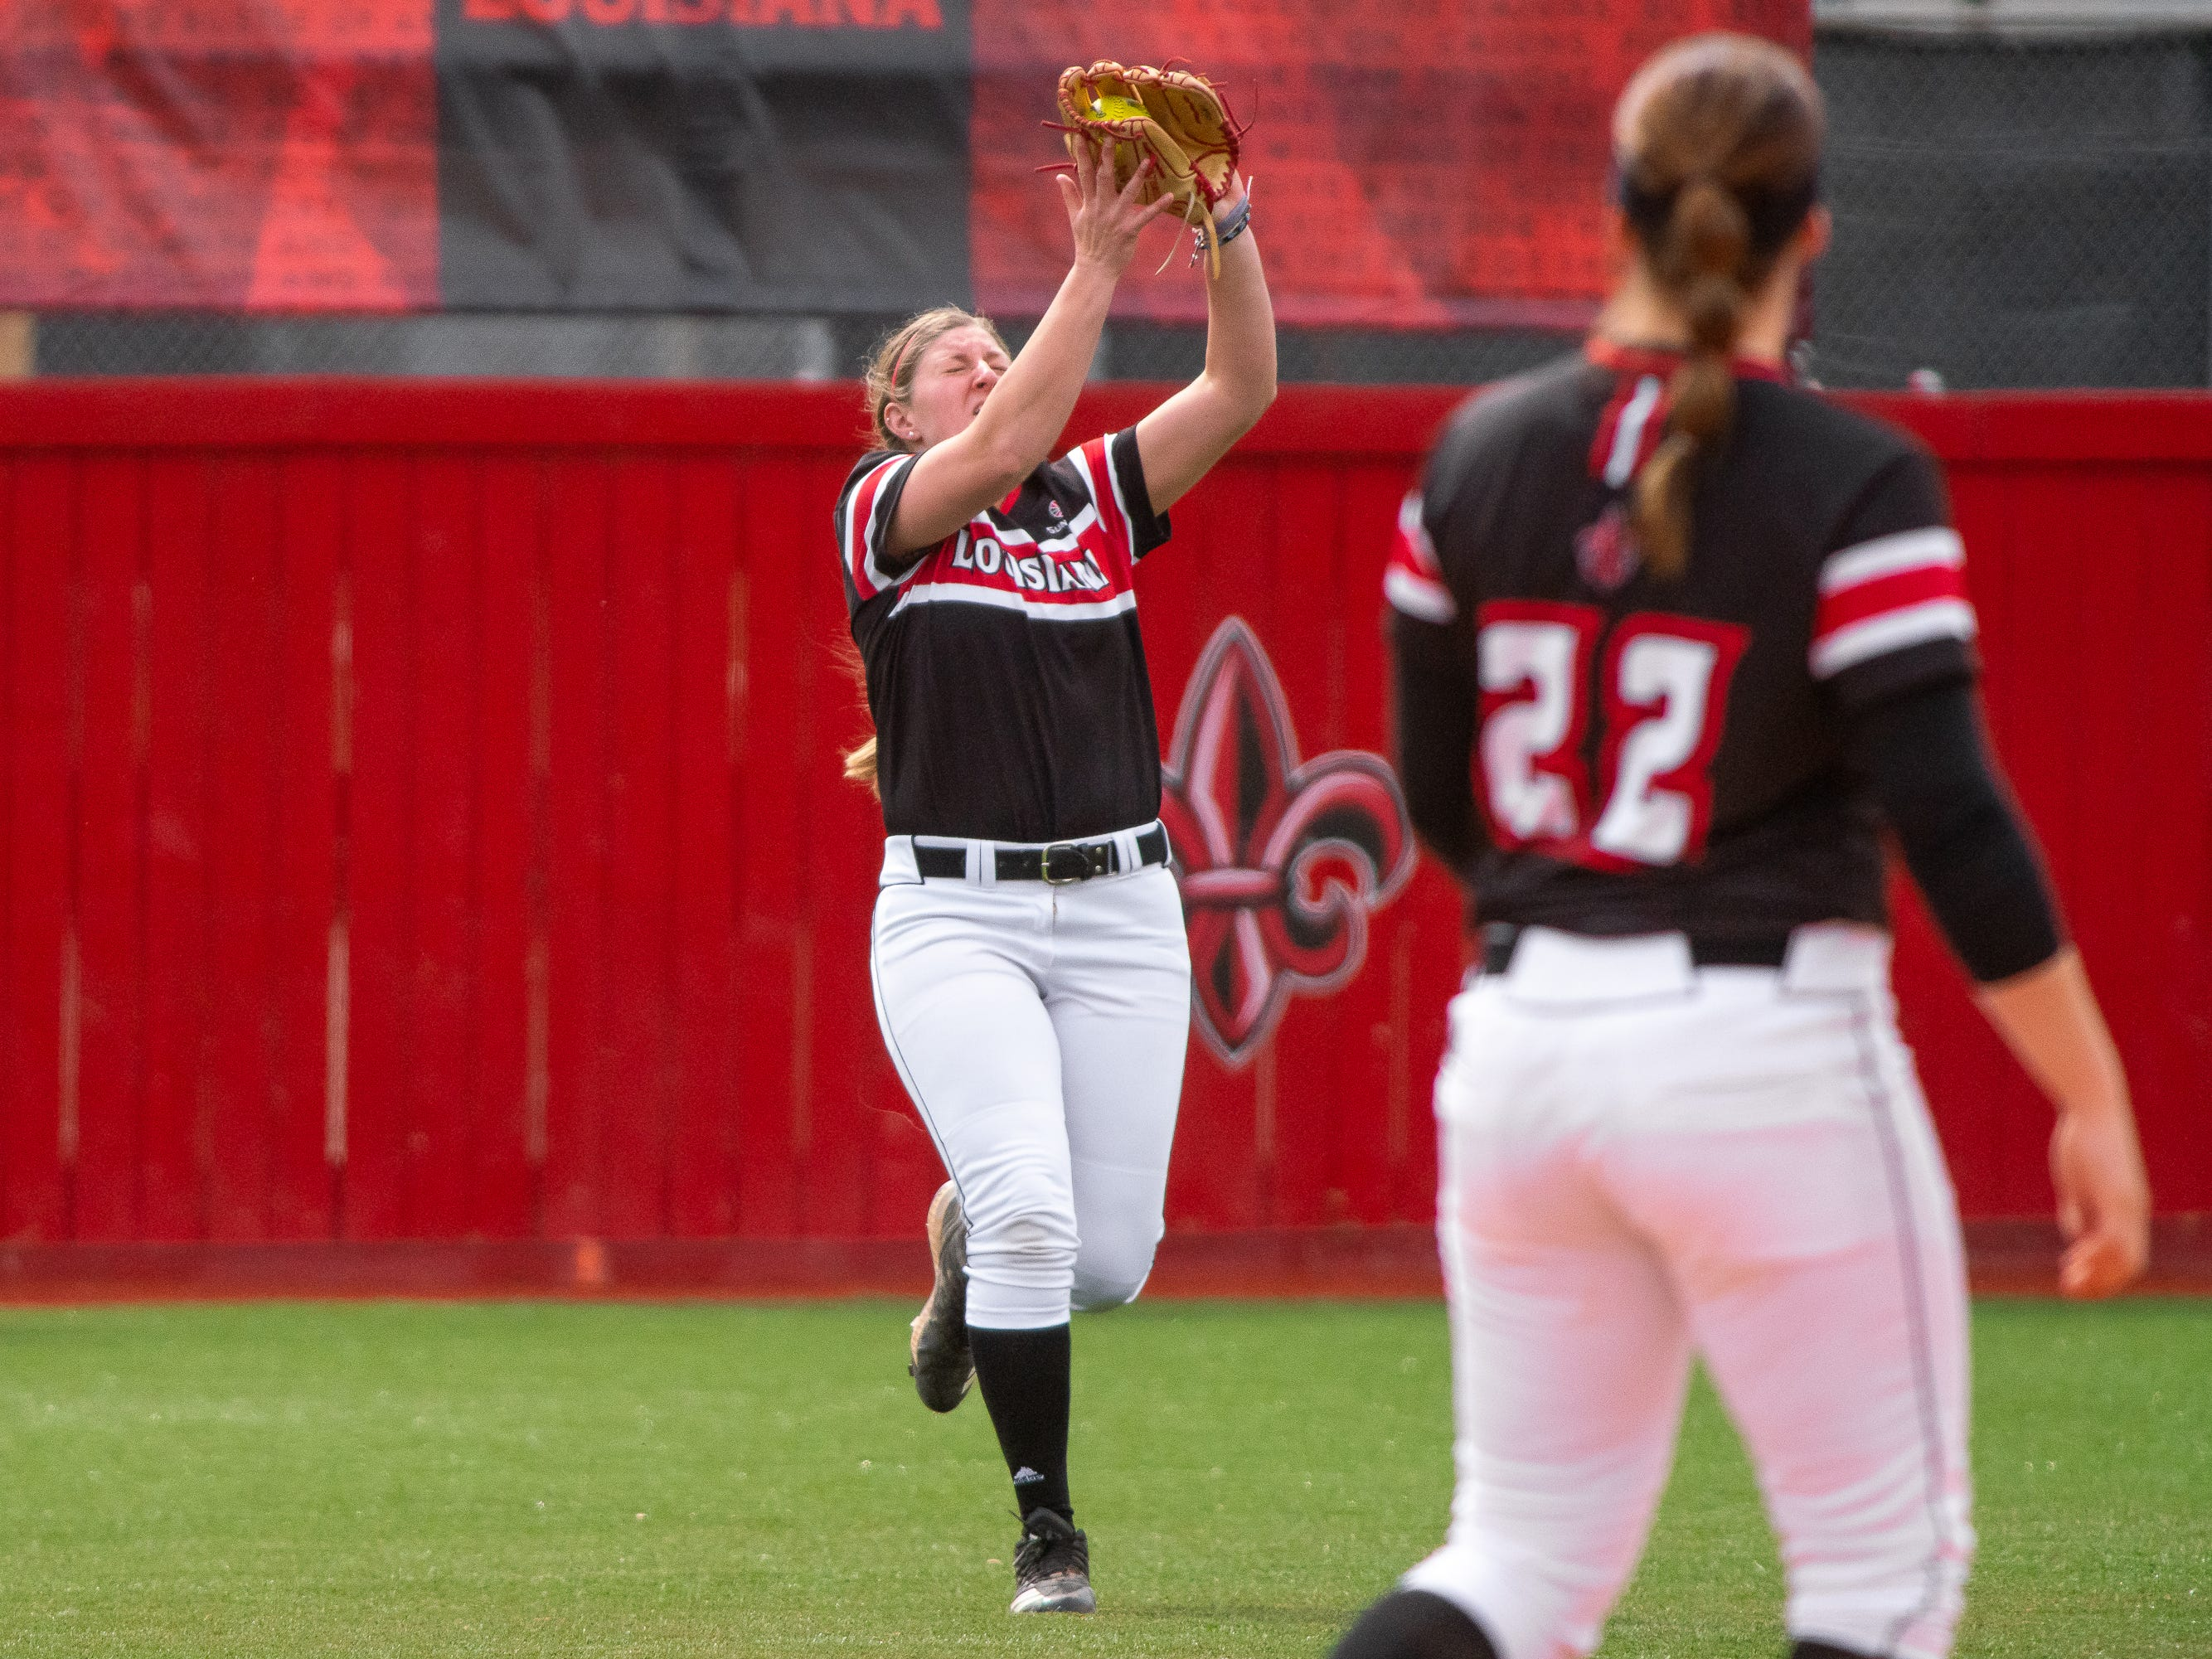 UL's Carrie Boswell makes a catch in the outfield as the Ragin' Cajuns take on the Troy Trojans at Yvette Girouard Field at Lamson Park on Saturday, March 16, 2019.